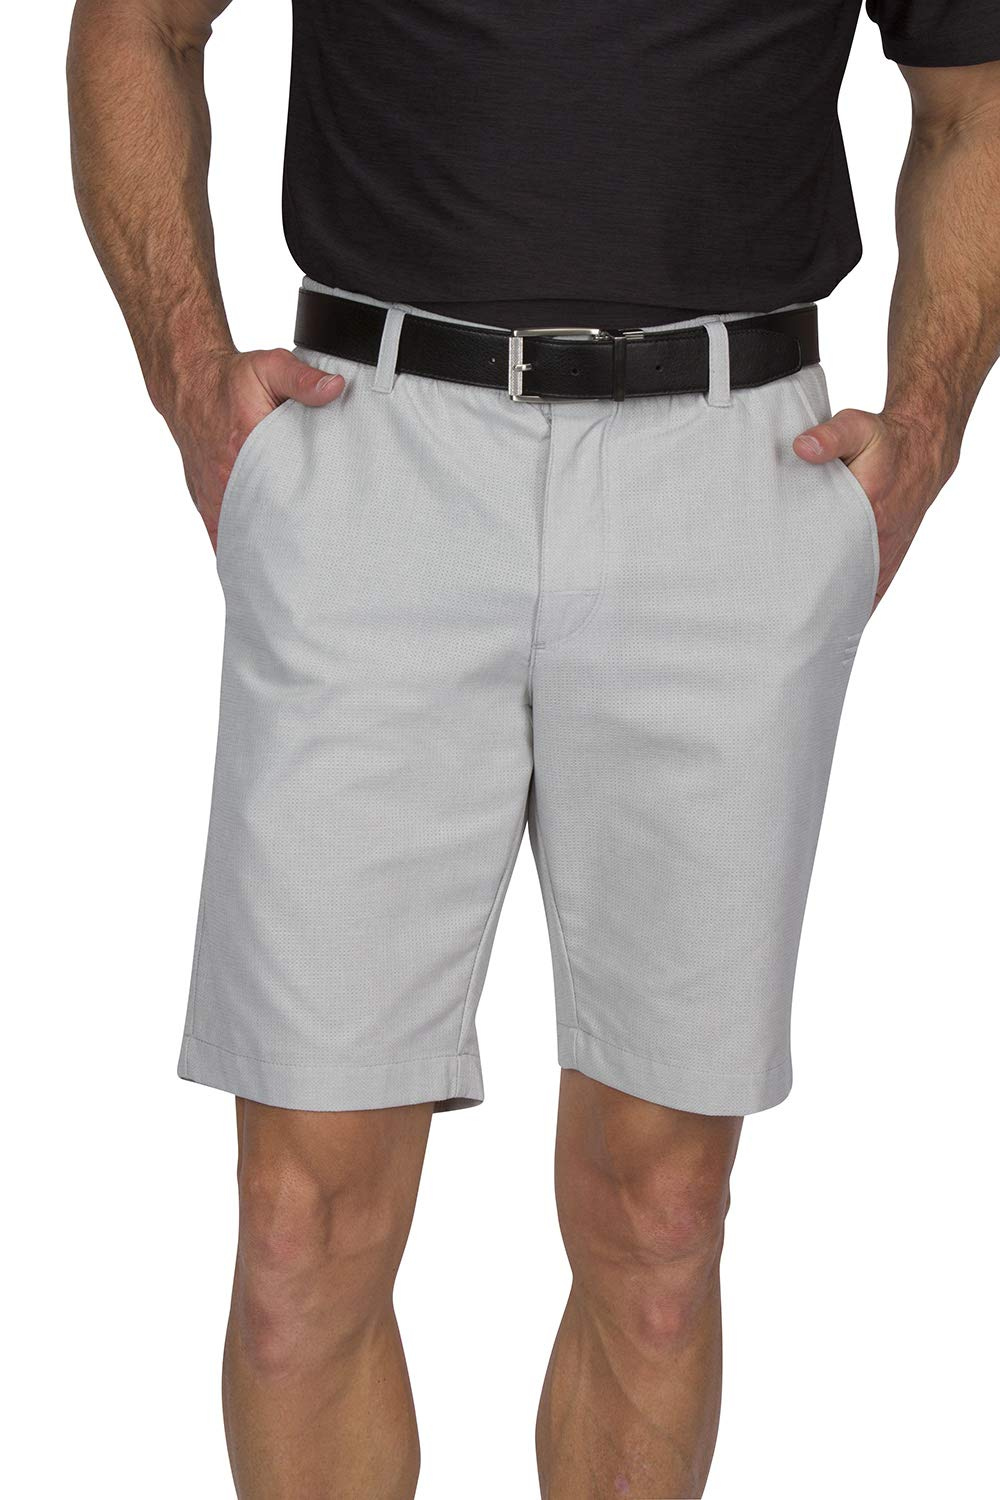 Three Sixty Six Dry Fit Golf Shorts for Men - Tapered Slim Fit Chinos - Mens Shorts Athletic